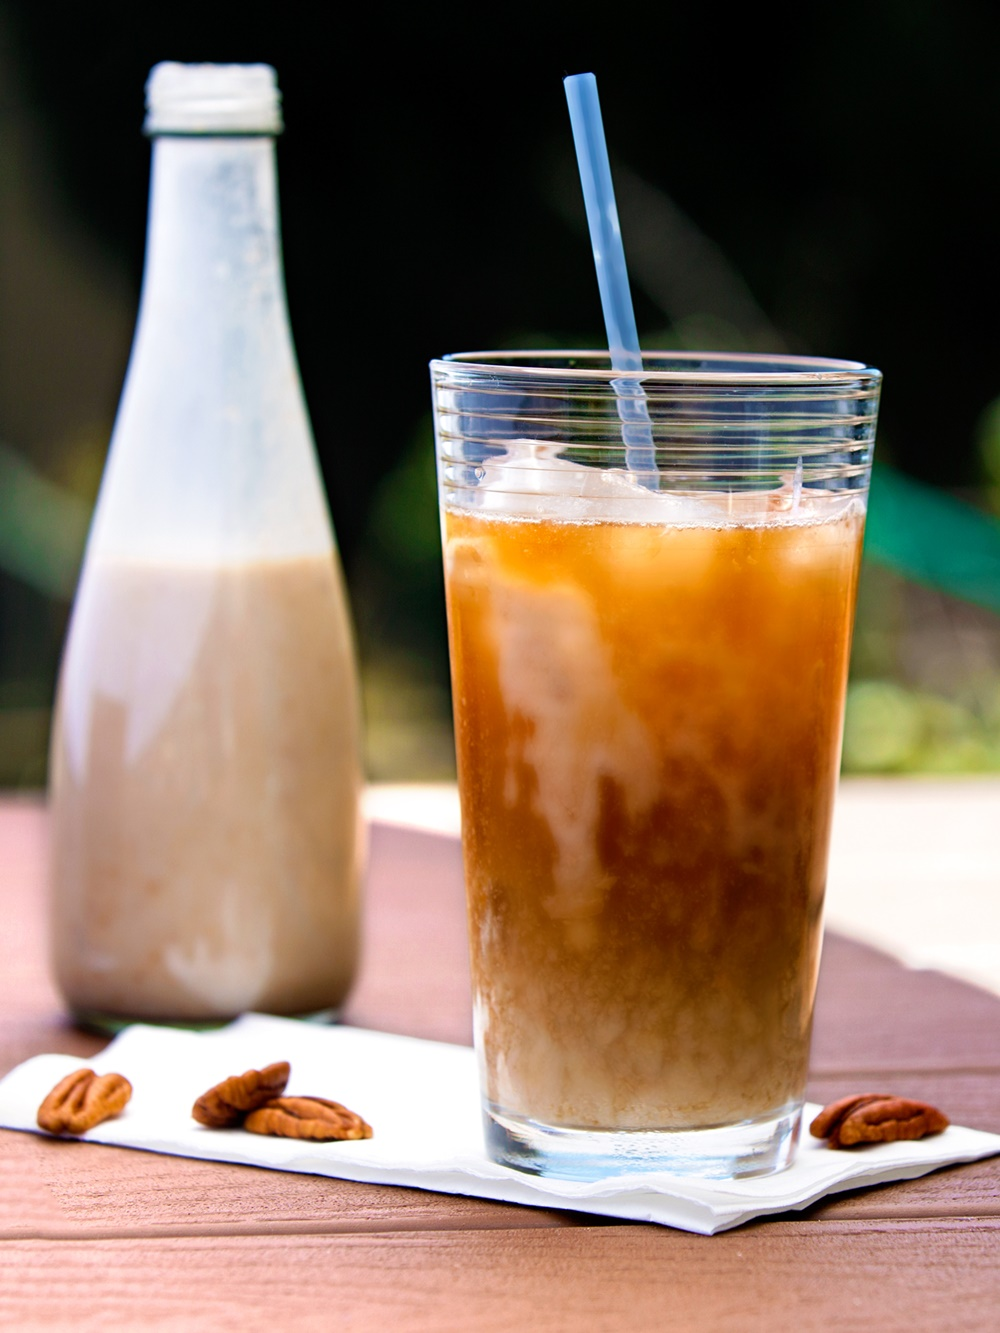 Butter Pecan Dairy-Free Iced Coffee Recipe - an amazing, fast (just 5 minutes!), easy, rich, energizing delight that's naturally vegan, gluten-free & soy-free!